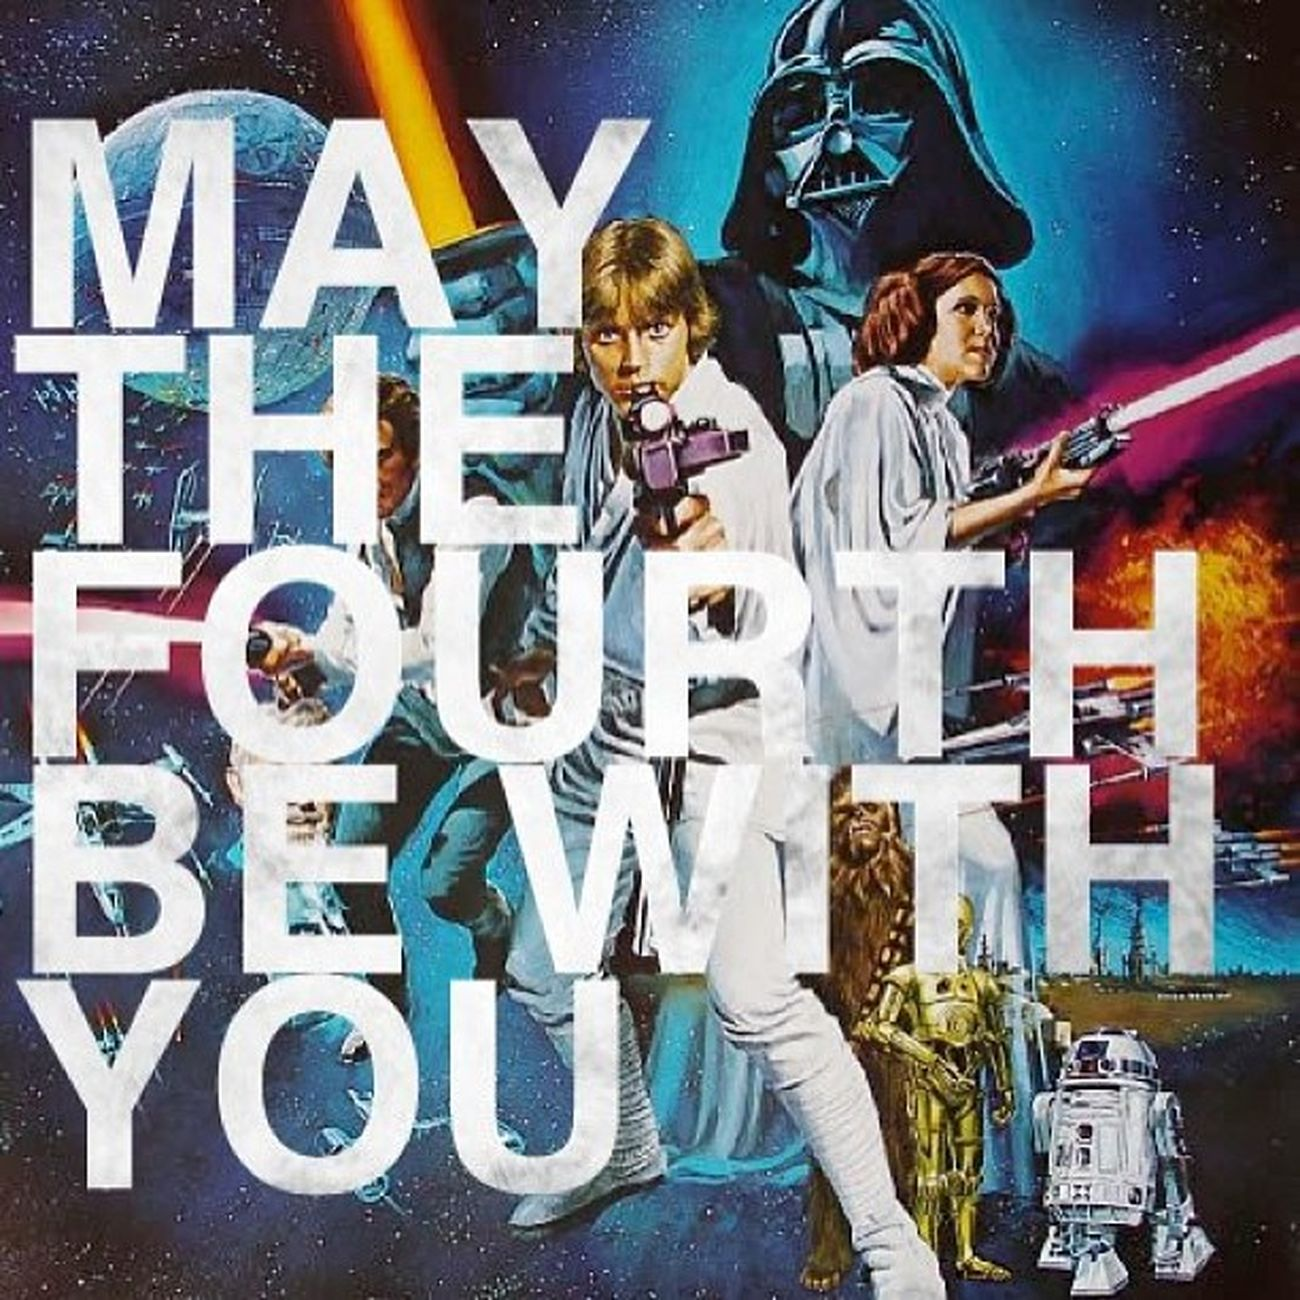 YESS the day is finally here!! Time to celebrate the greatest gift America has given the world... MayTheFourthBeWithYou Starwarsday